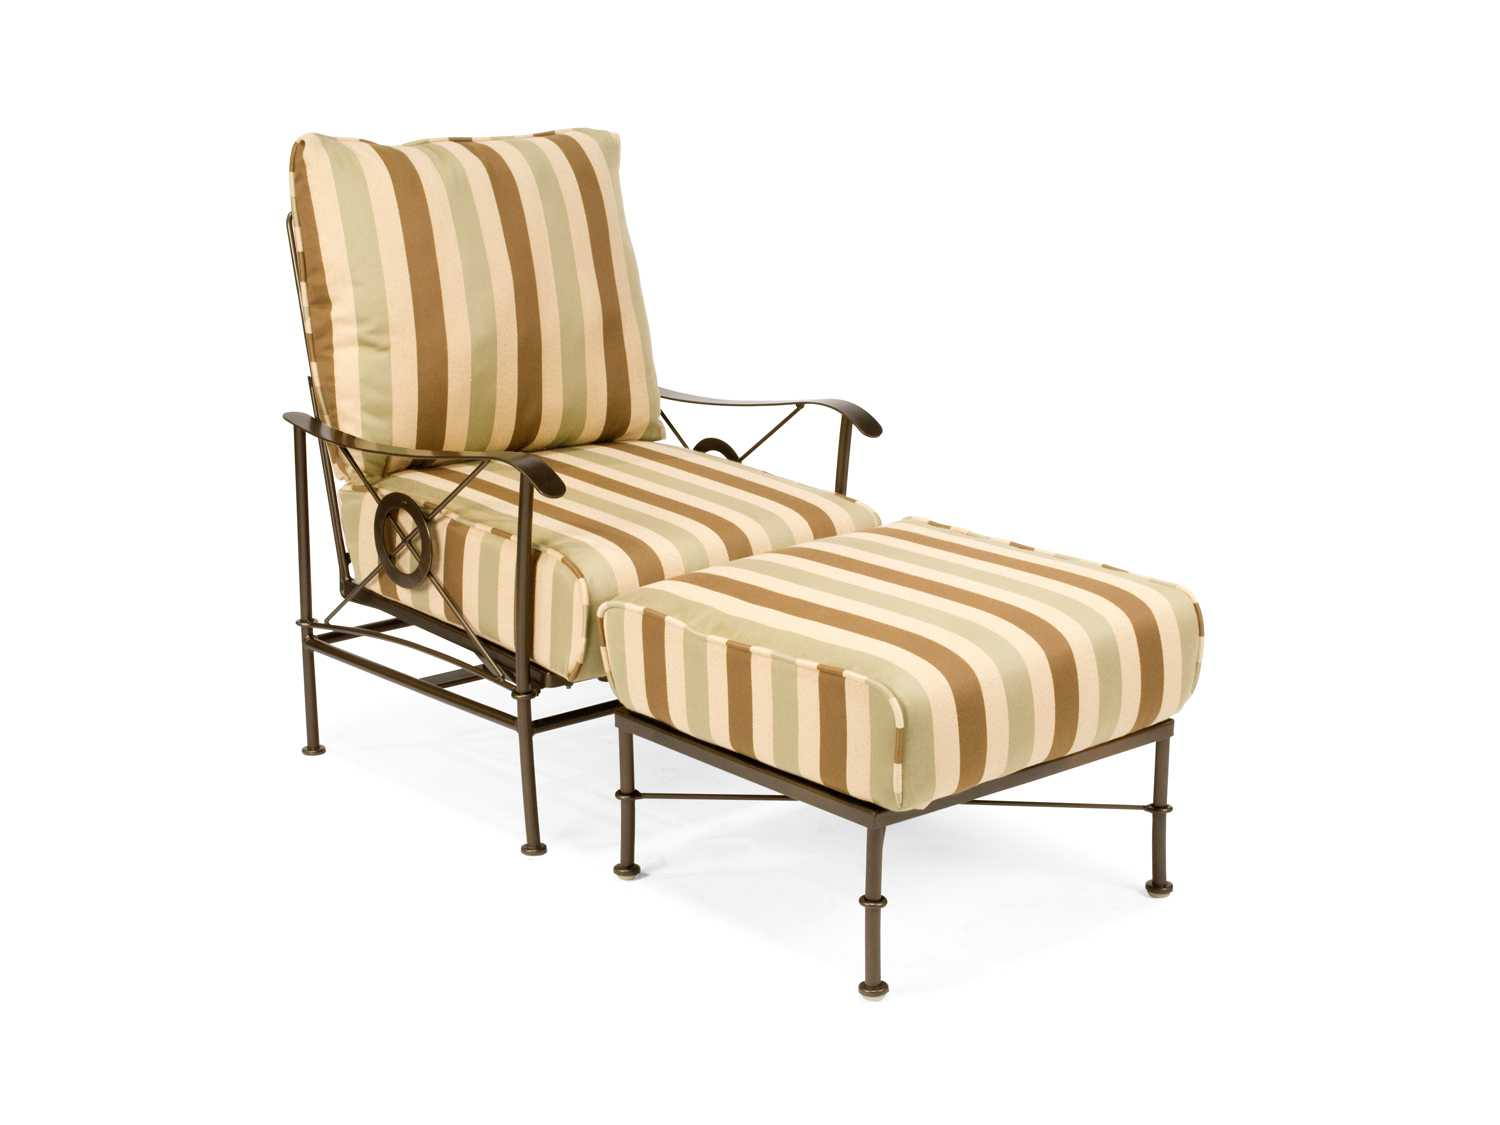 Peyton patio seating set replacement cushions outdoor for Big lots chaise lounge cushions